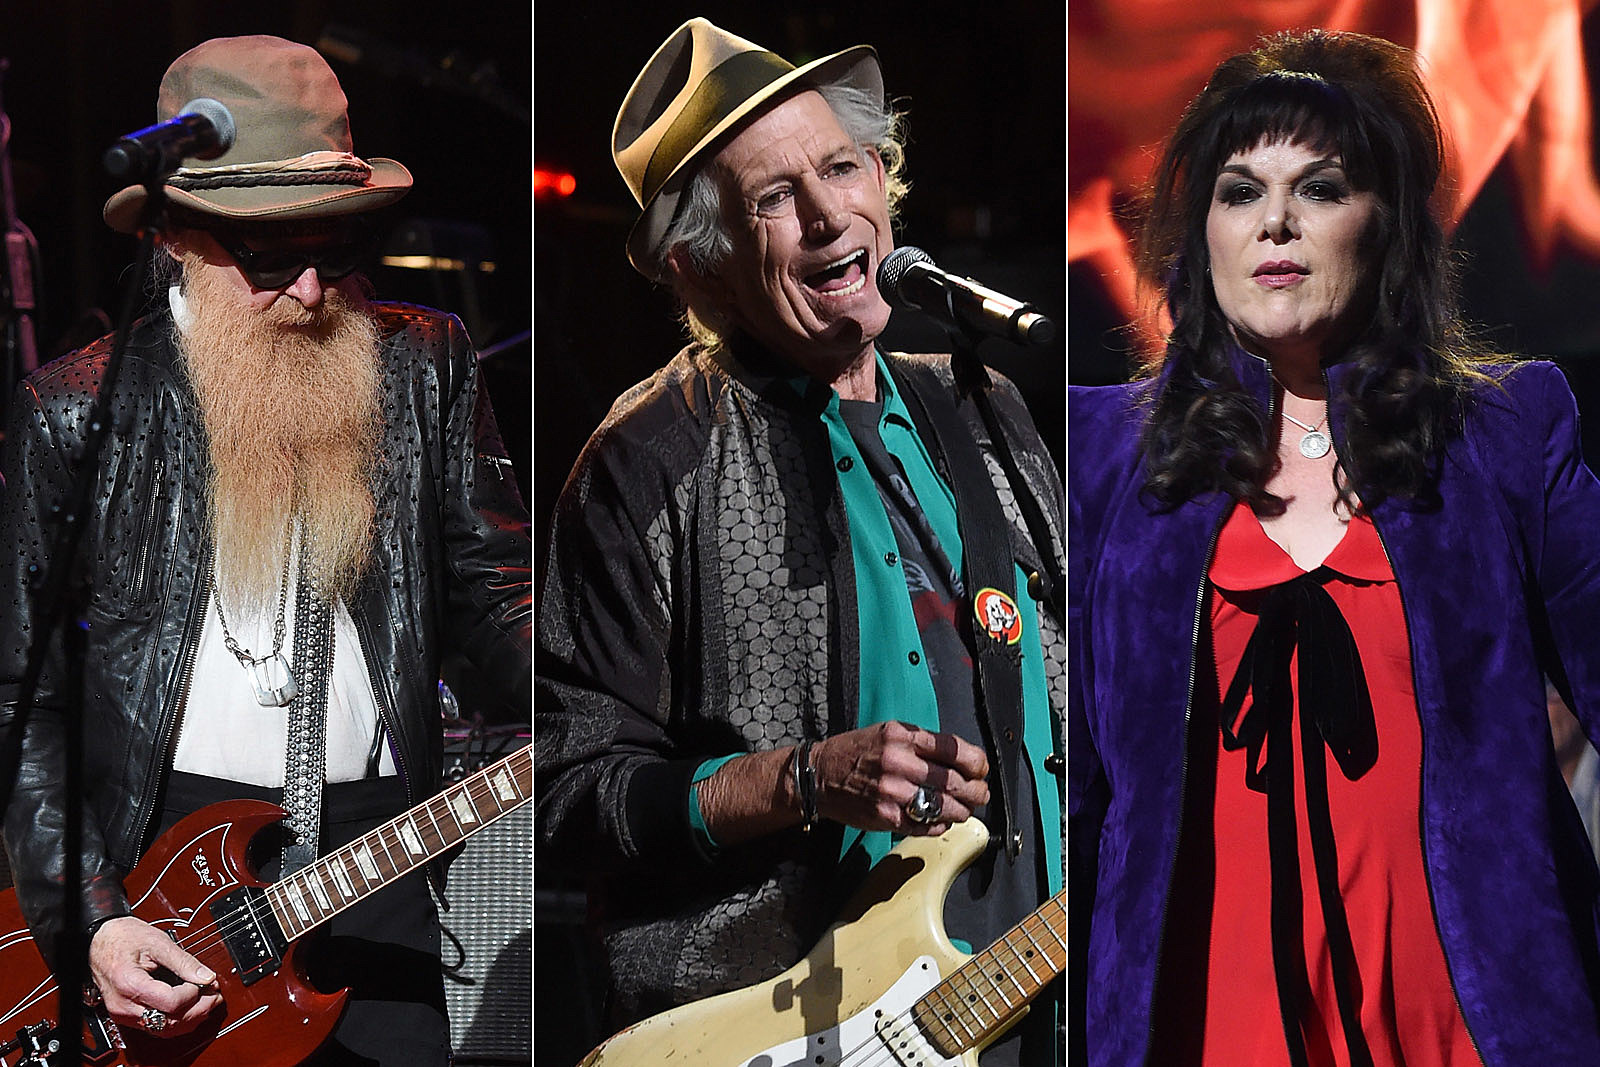 Watch Keith Richards, Ann Wilson, Billy Gibbons + More at Love Rocks NYC! Benefit Concert